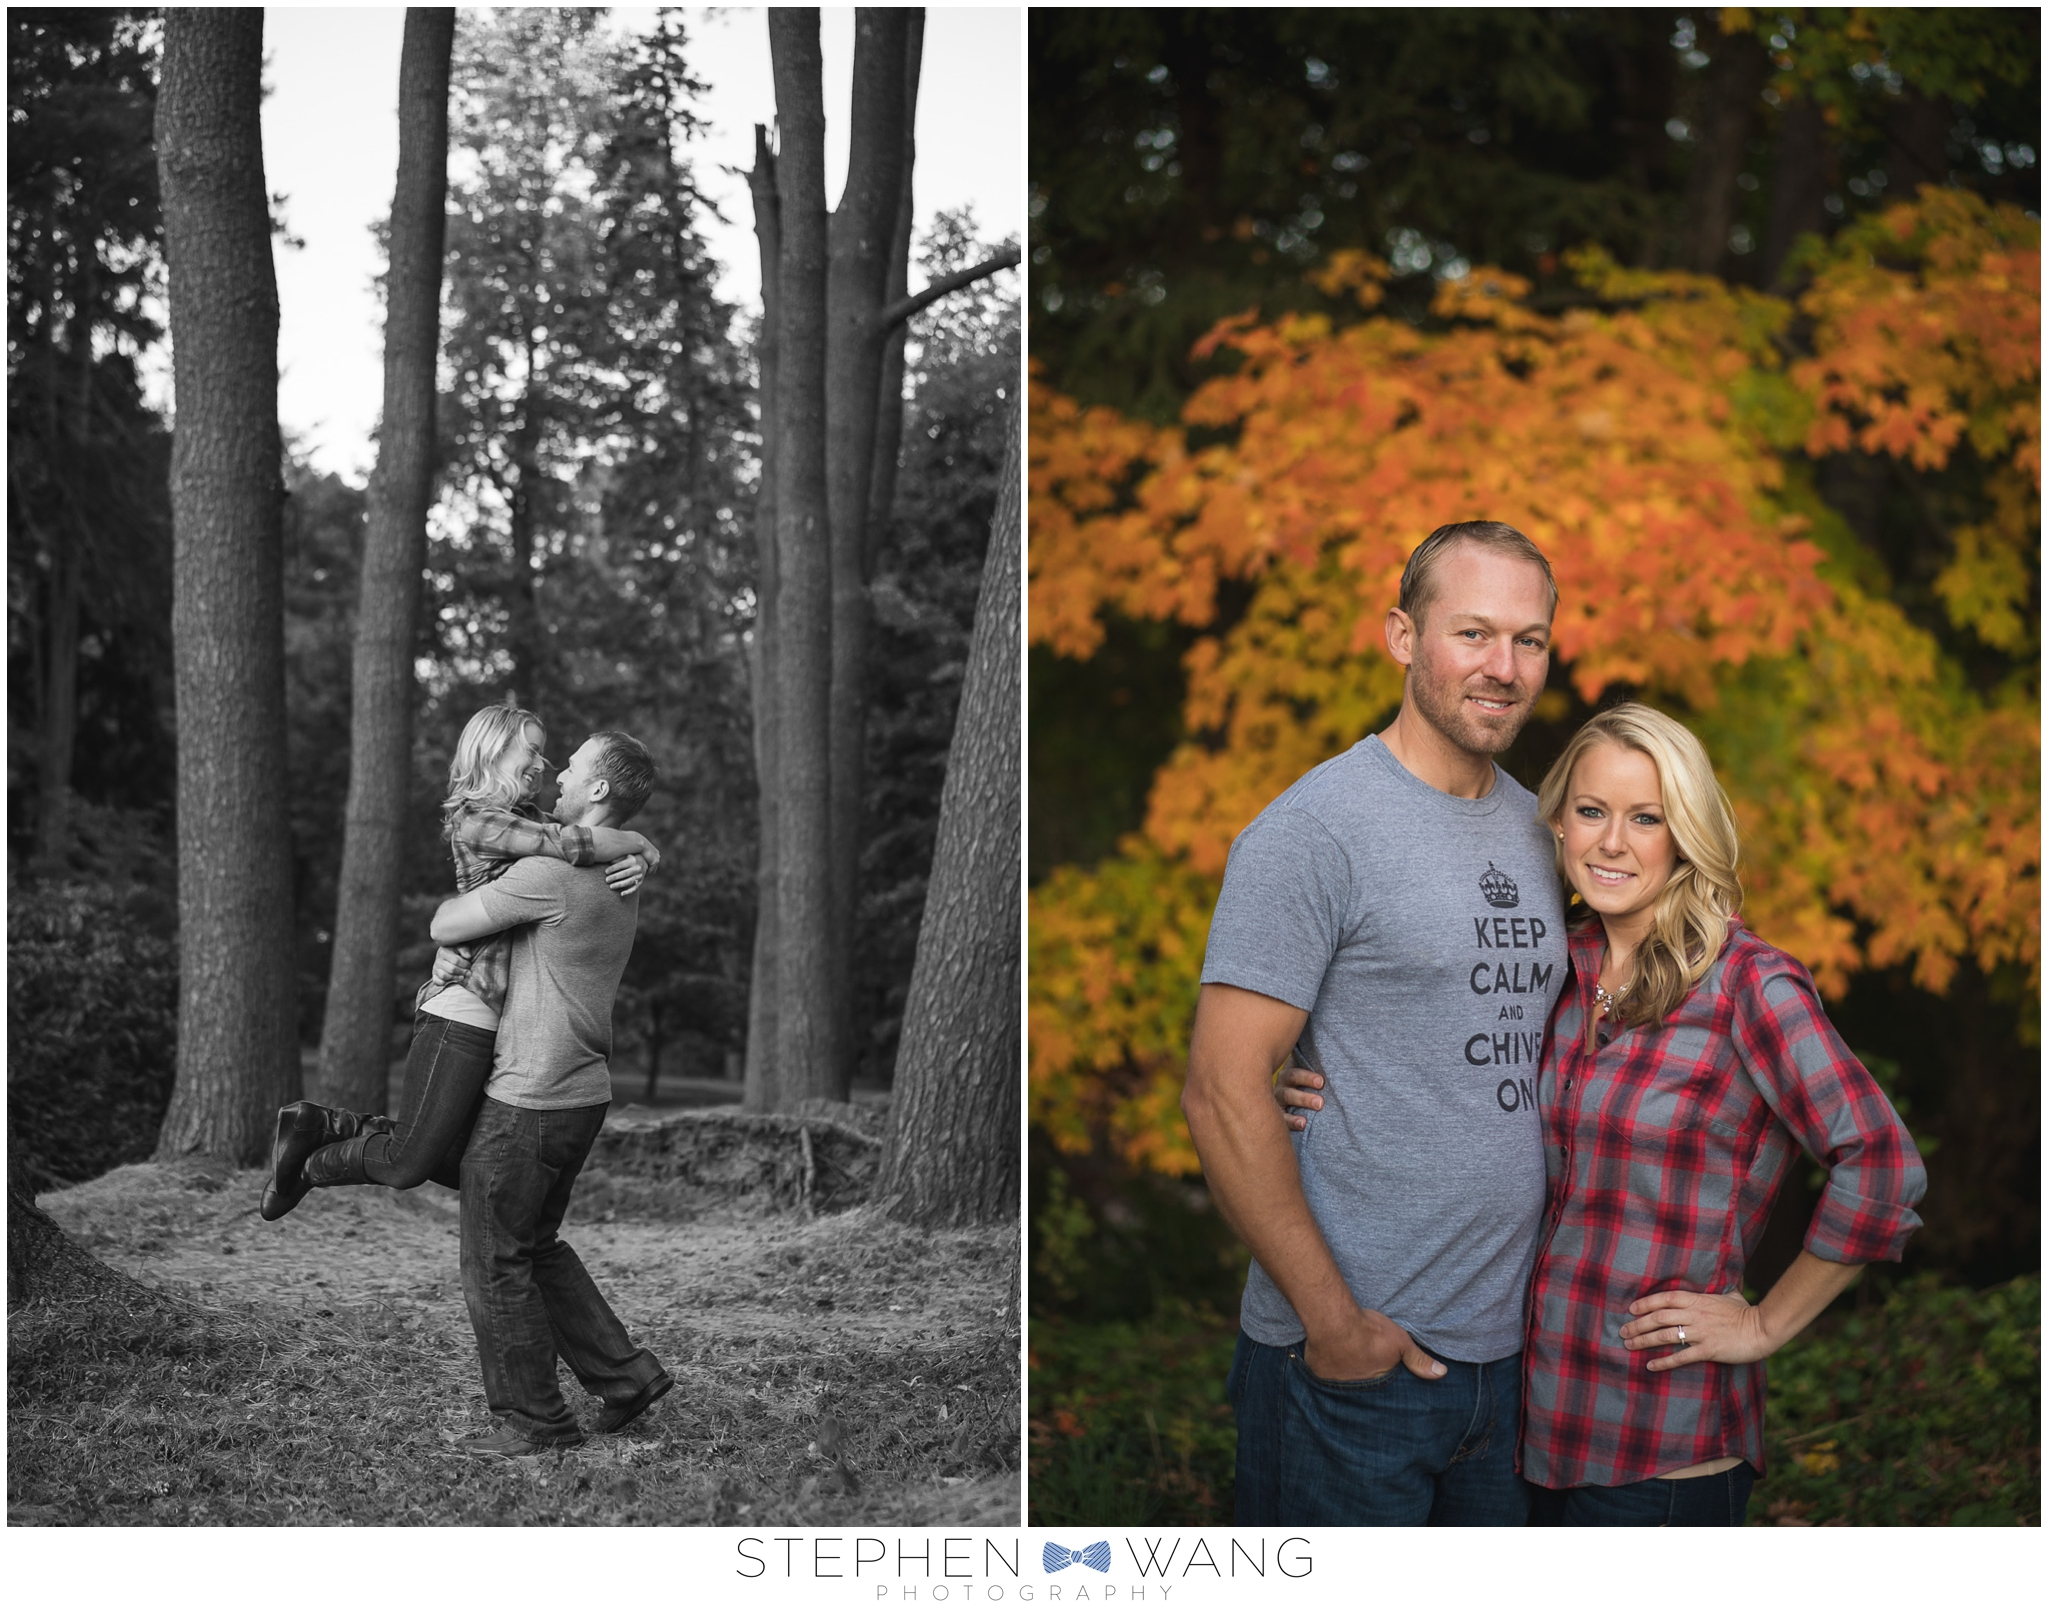 Stephen Wang Photography Connecticut Engagement Session photographer Wadsworth Mansion Park Middletown Autum Fall Foliage CT New Haven-10-23_0003.jpg